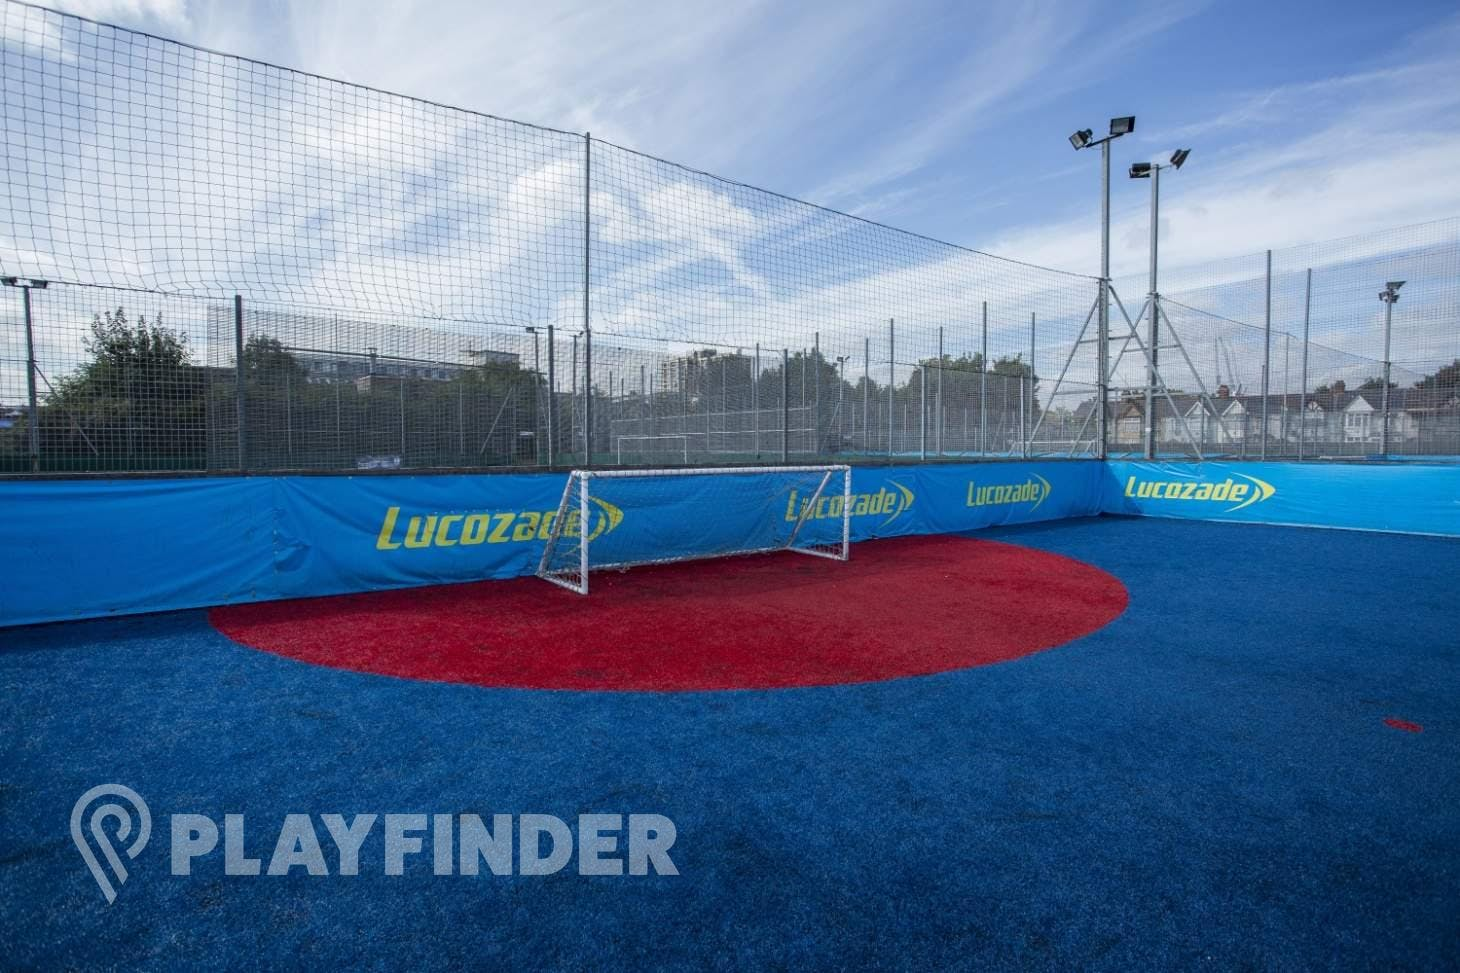 Powerleague Tottenham 5 a side | 3G Astroturf football pitch